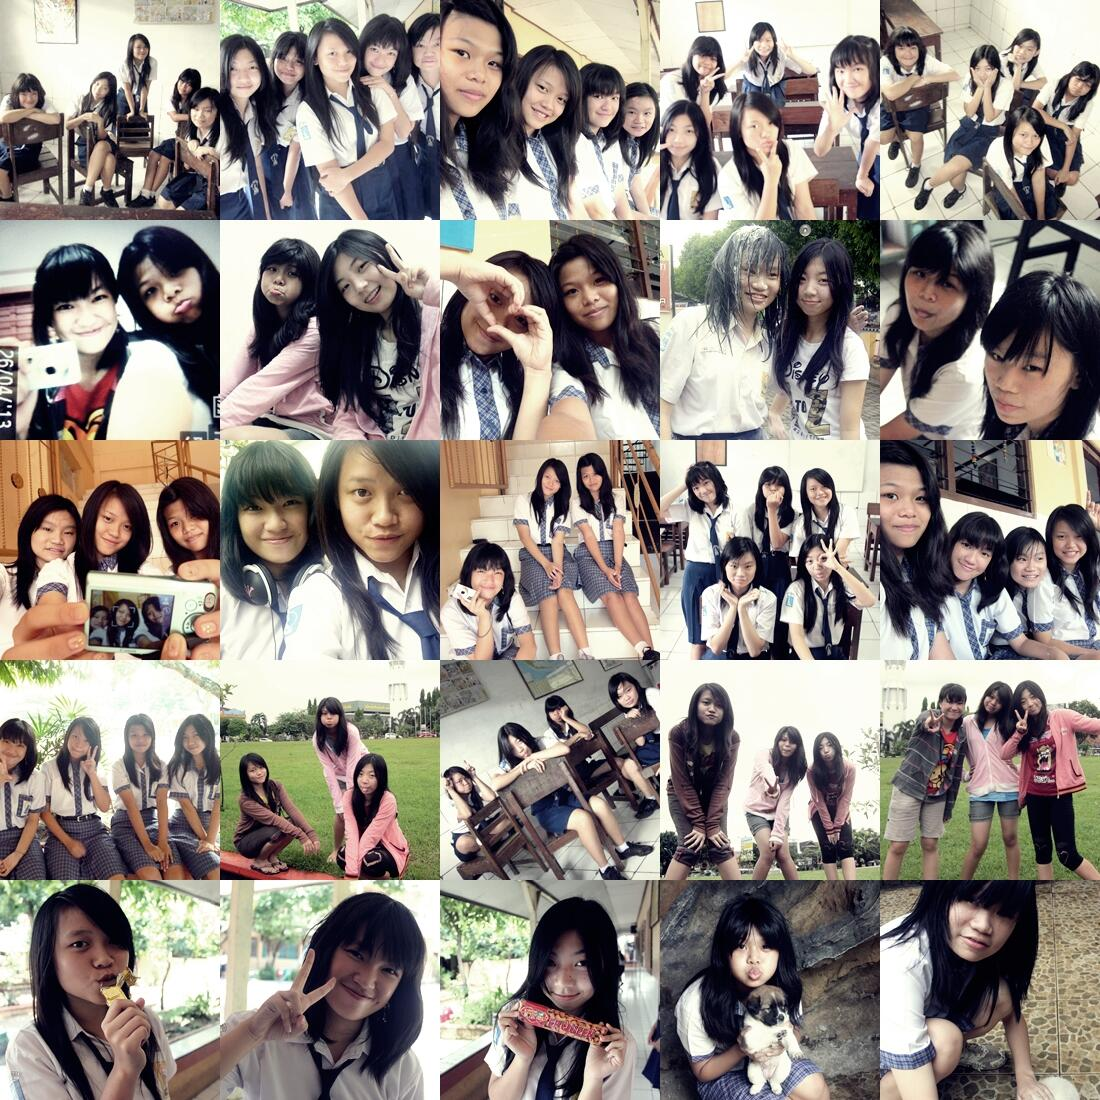 Unforgotable moment :D @SXiaoyan98 @MariaNa_taLia @im_shyellie @cellinevania http://t.co/Tl5nWqR3On